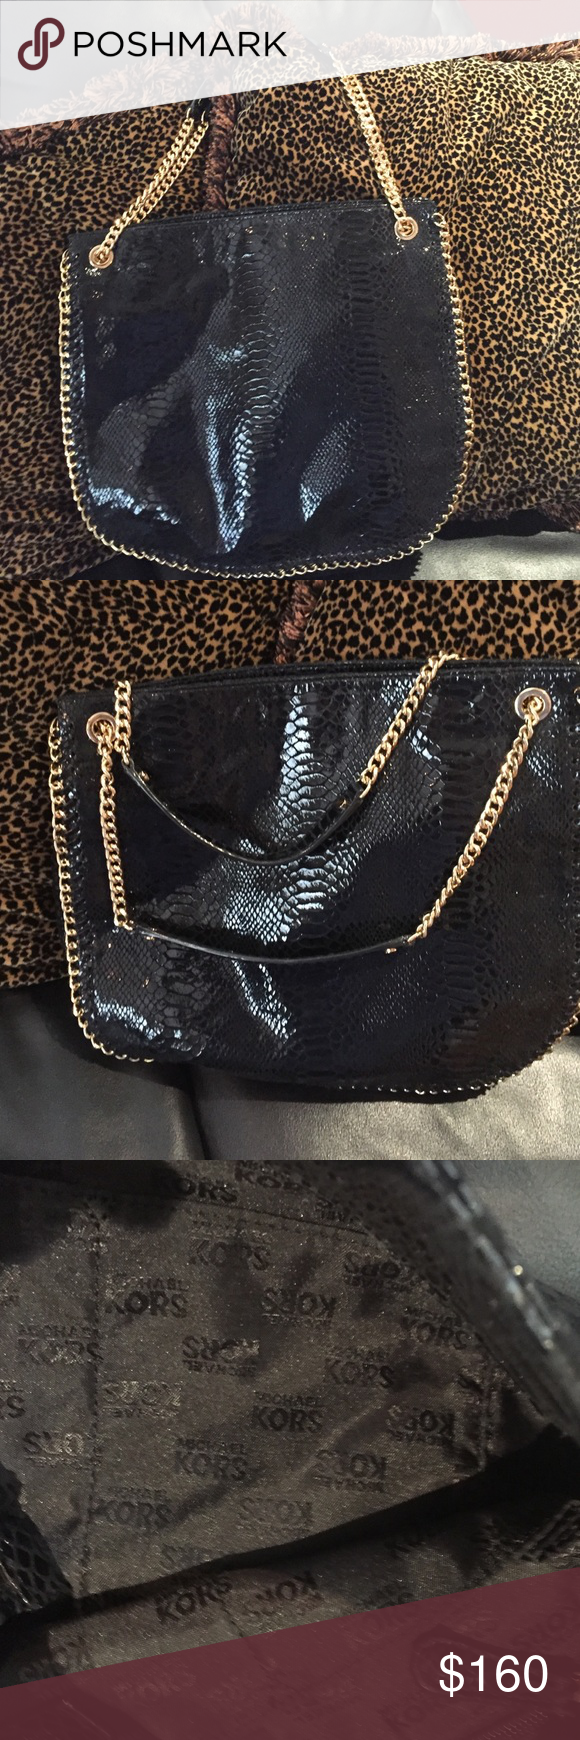 MICHAEL KORS BLACK LEATHER WITH GOLD CHAIN TRIM Shoulder bag in black leather, double straps, four open pockets, back zipper and another snap button pocket perfect got cell phone, gently used, clean Michael Kors Bags Shoulder Bags